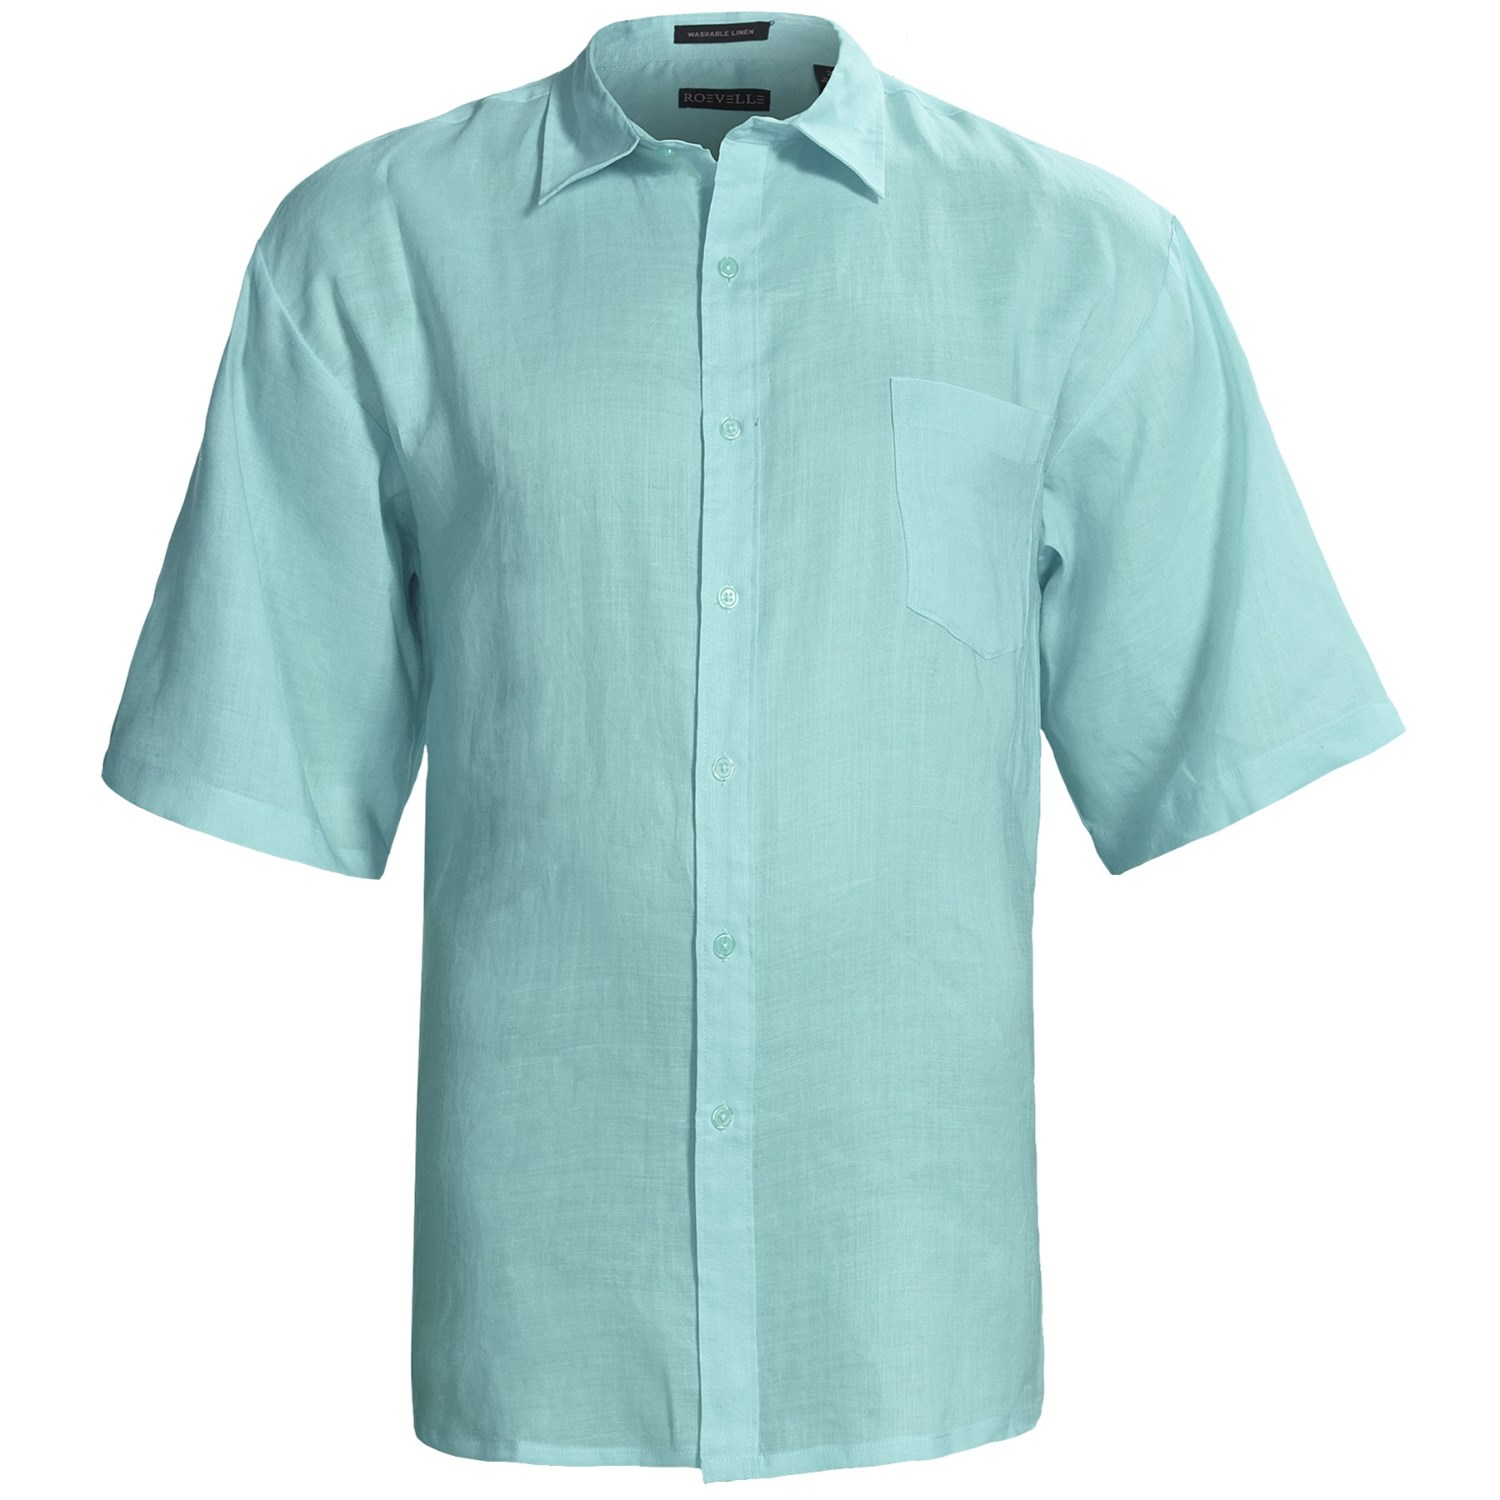 Washable Linen Shirt Short Sleeve For Big And Tall Men